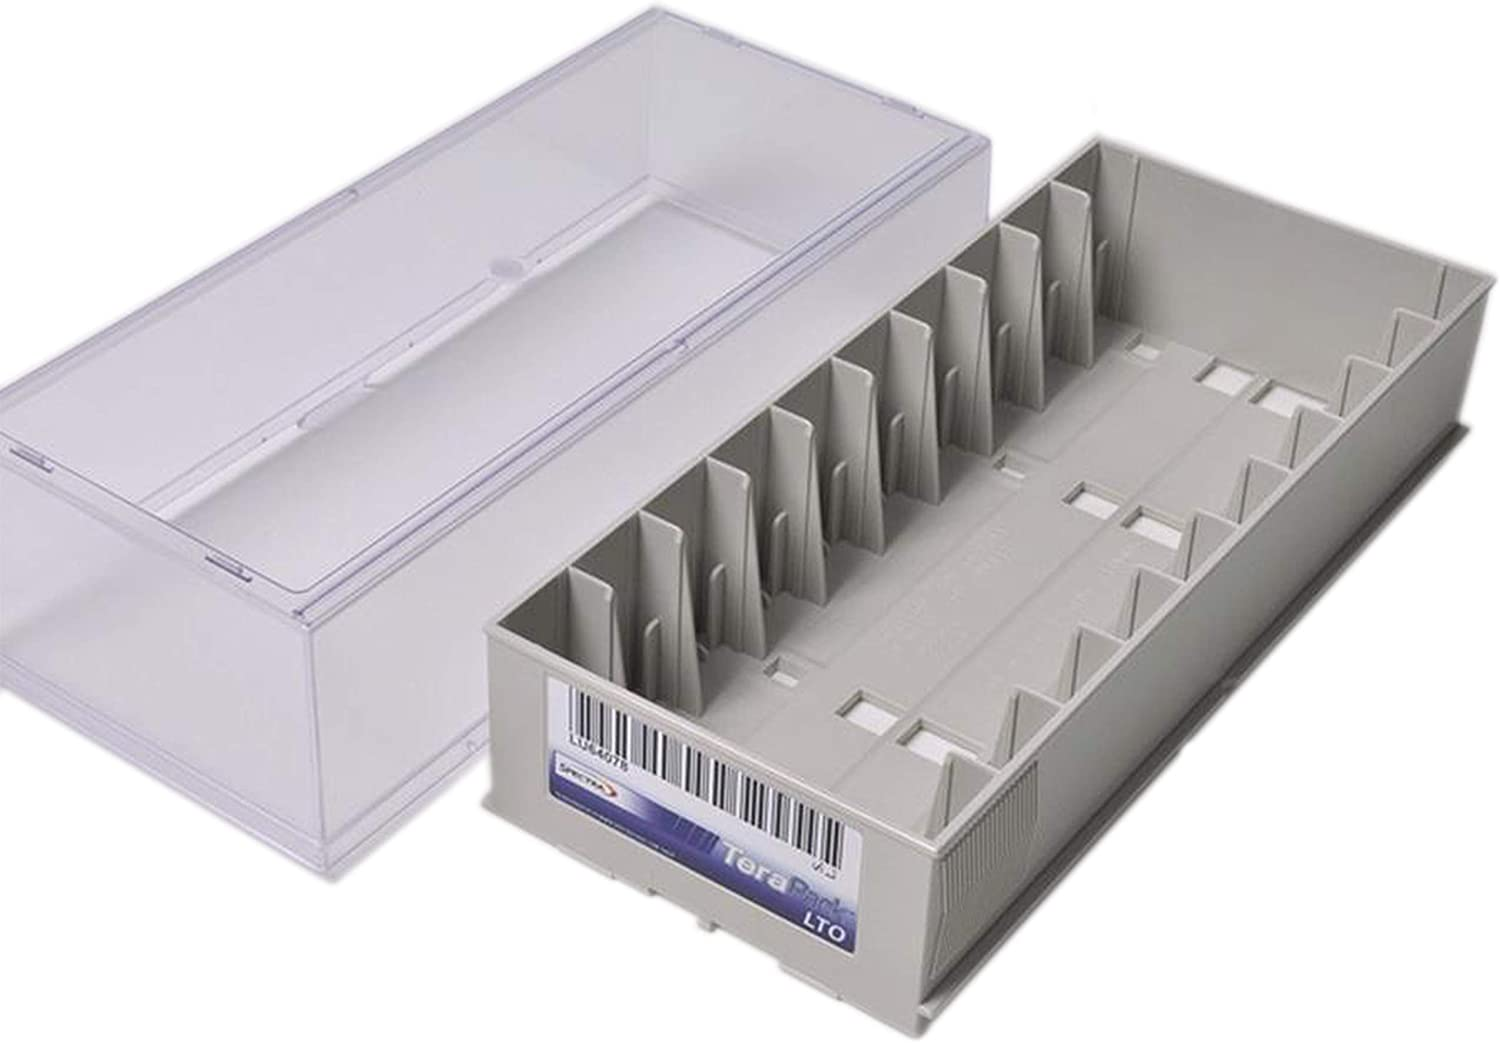 Spectra Logic 10 Slots (LTO) TeraPack Tray with Dust Cover - NO Media, Part #: 90949024-F